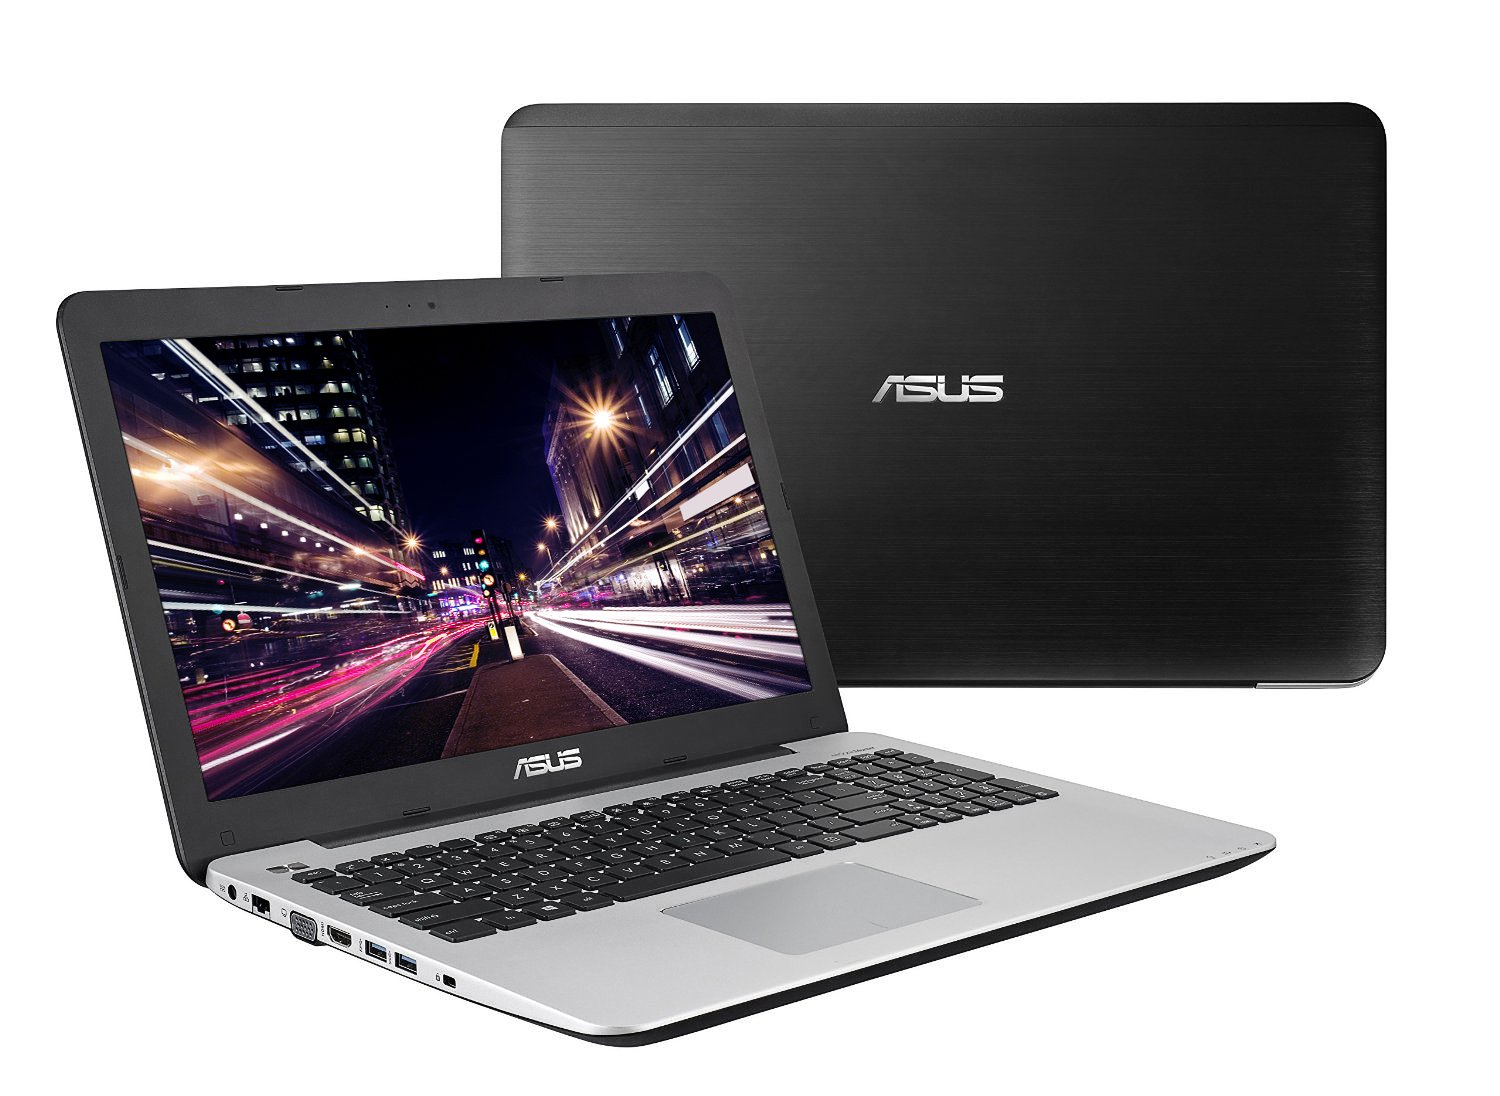 Amazon - Asus Intel Core i3 Broadwell 2.1GHz 15.6